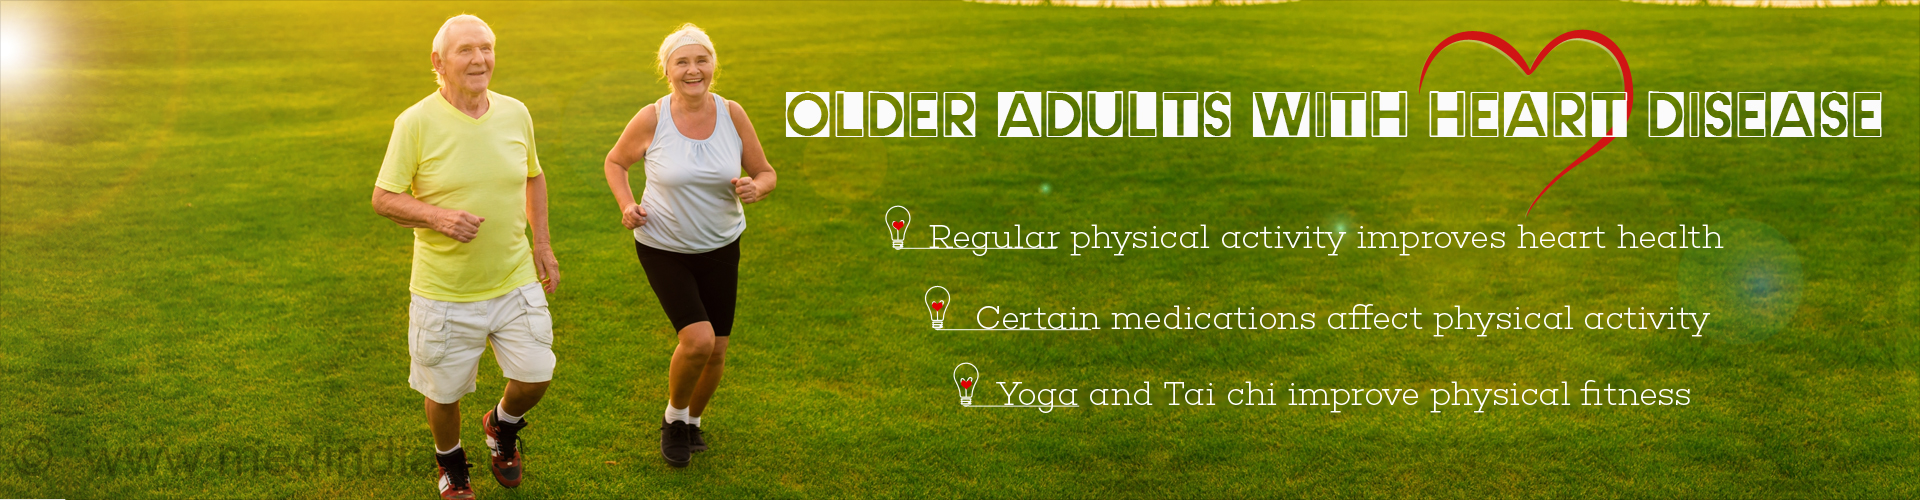 Older adults with heart disease